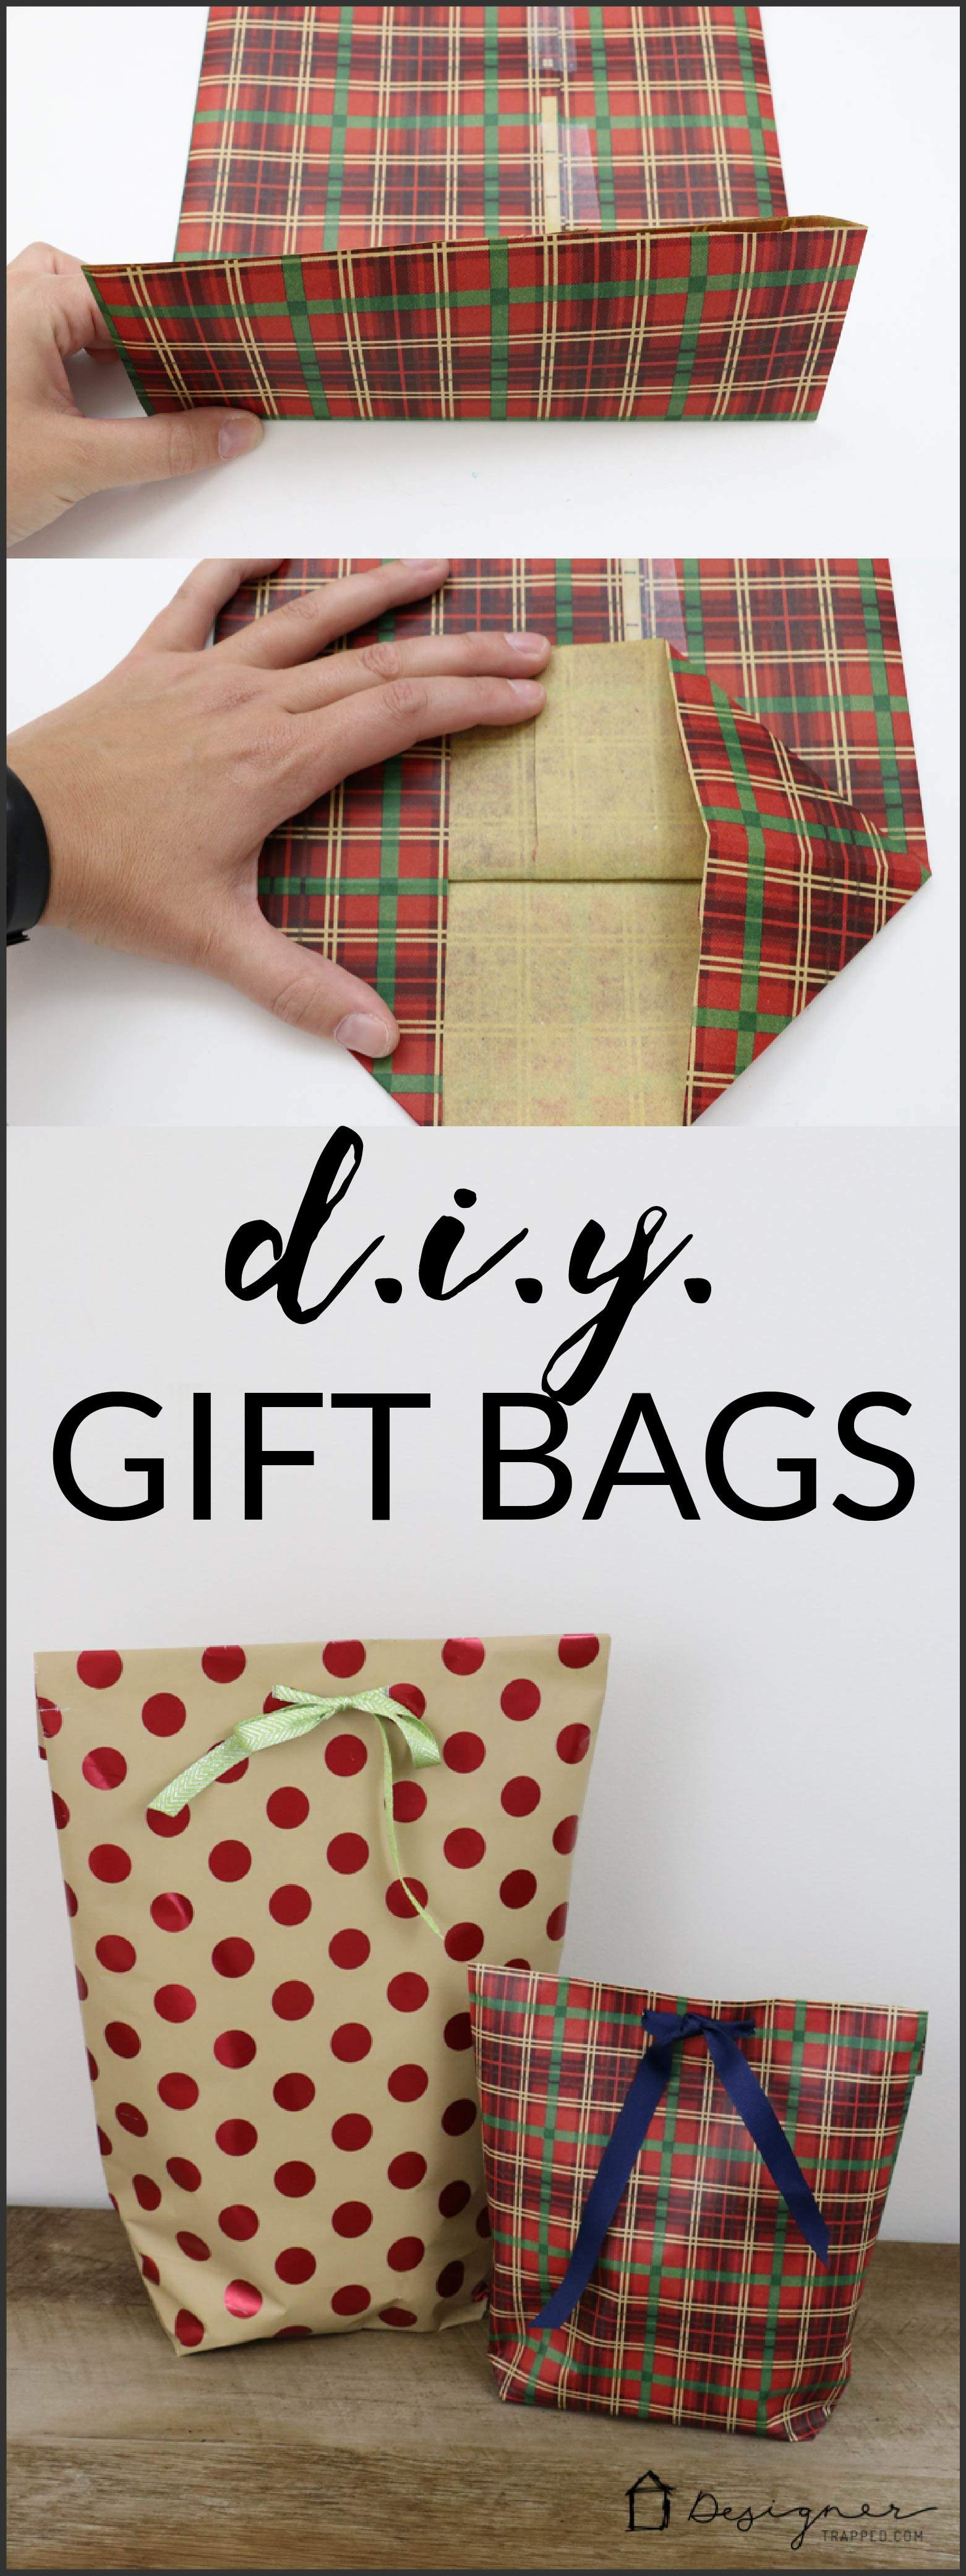 A MUST PIN FOR THE HOLIDAYS! Learn how to make a DIY gift bag from wrapping paper.